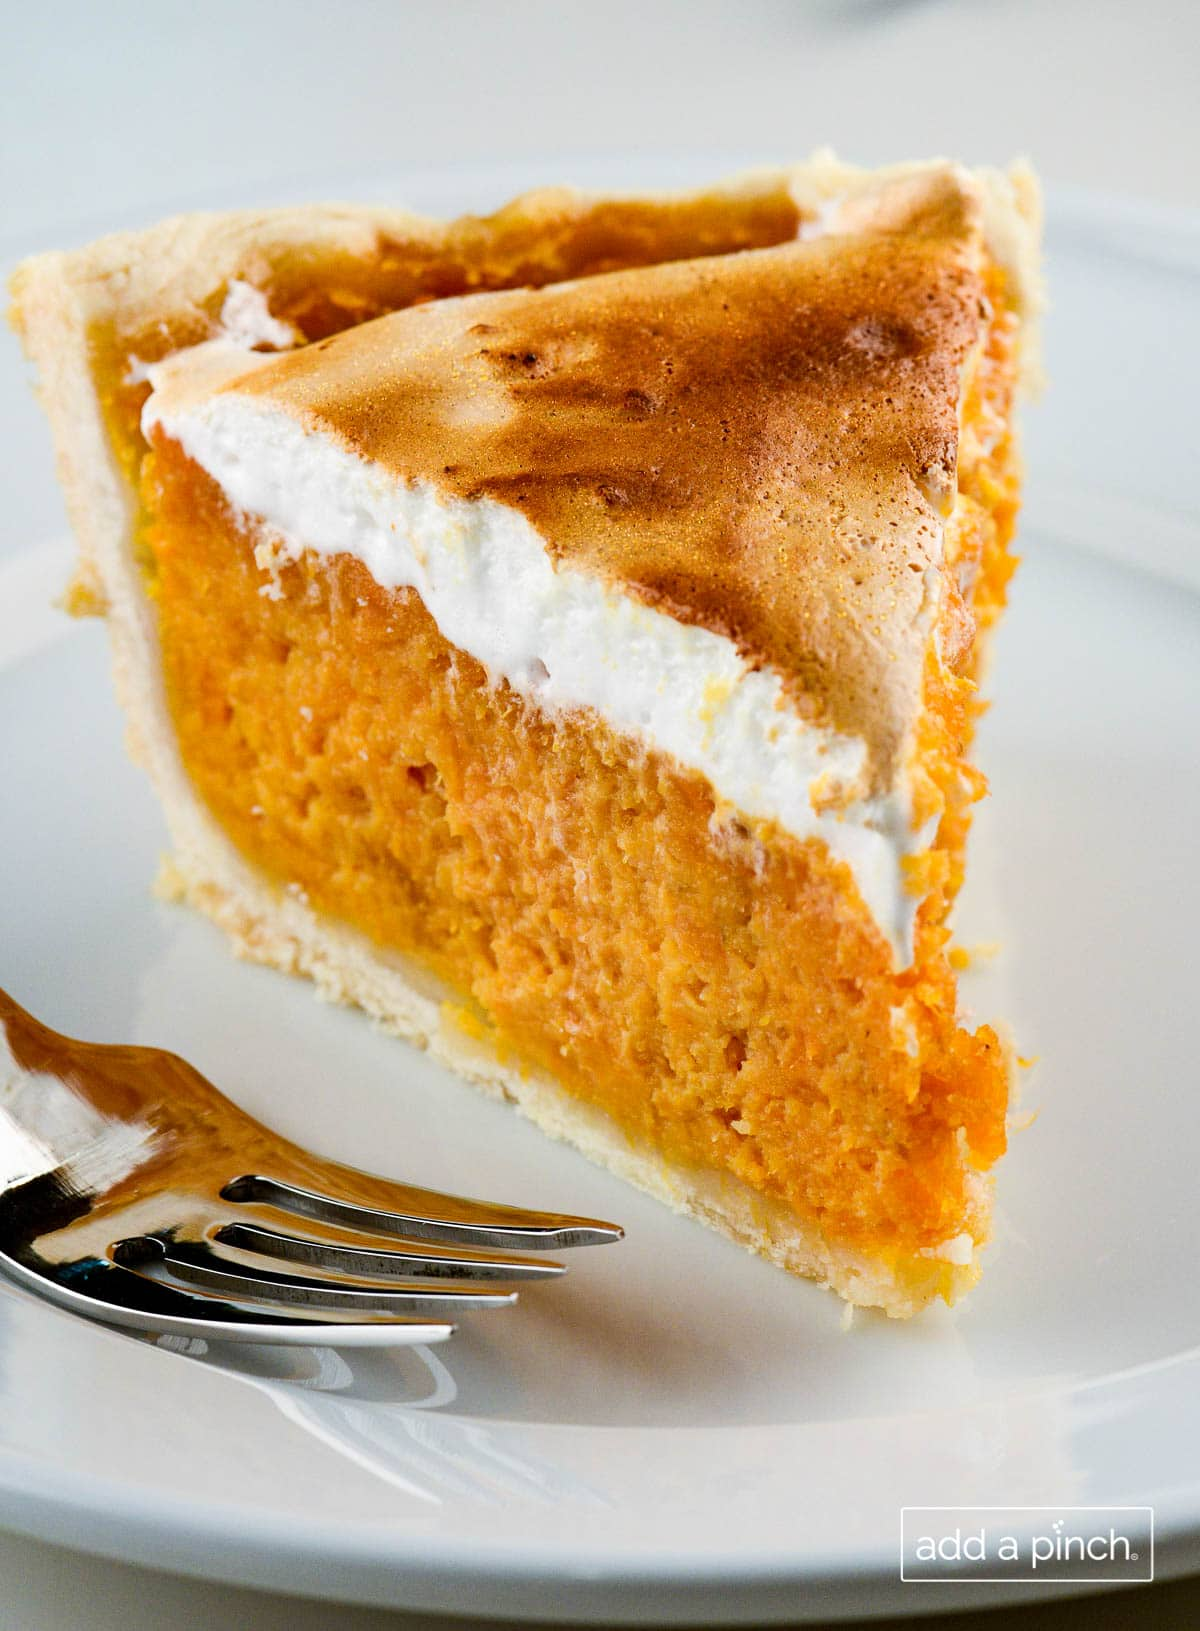 Photograph of slice of sweet potato pie with toasted marshmallow fluff topping.